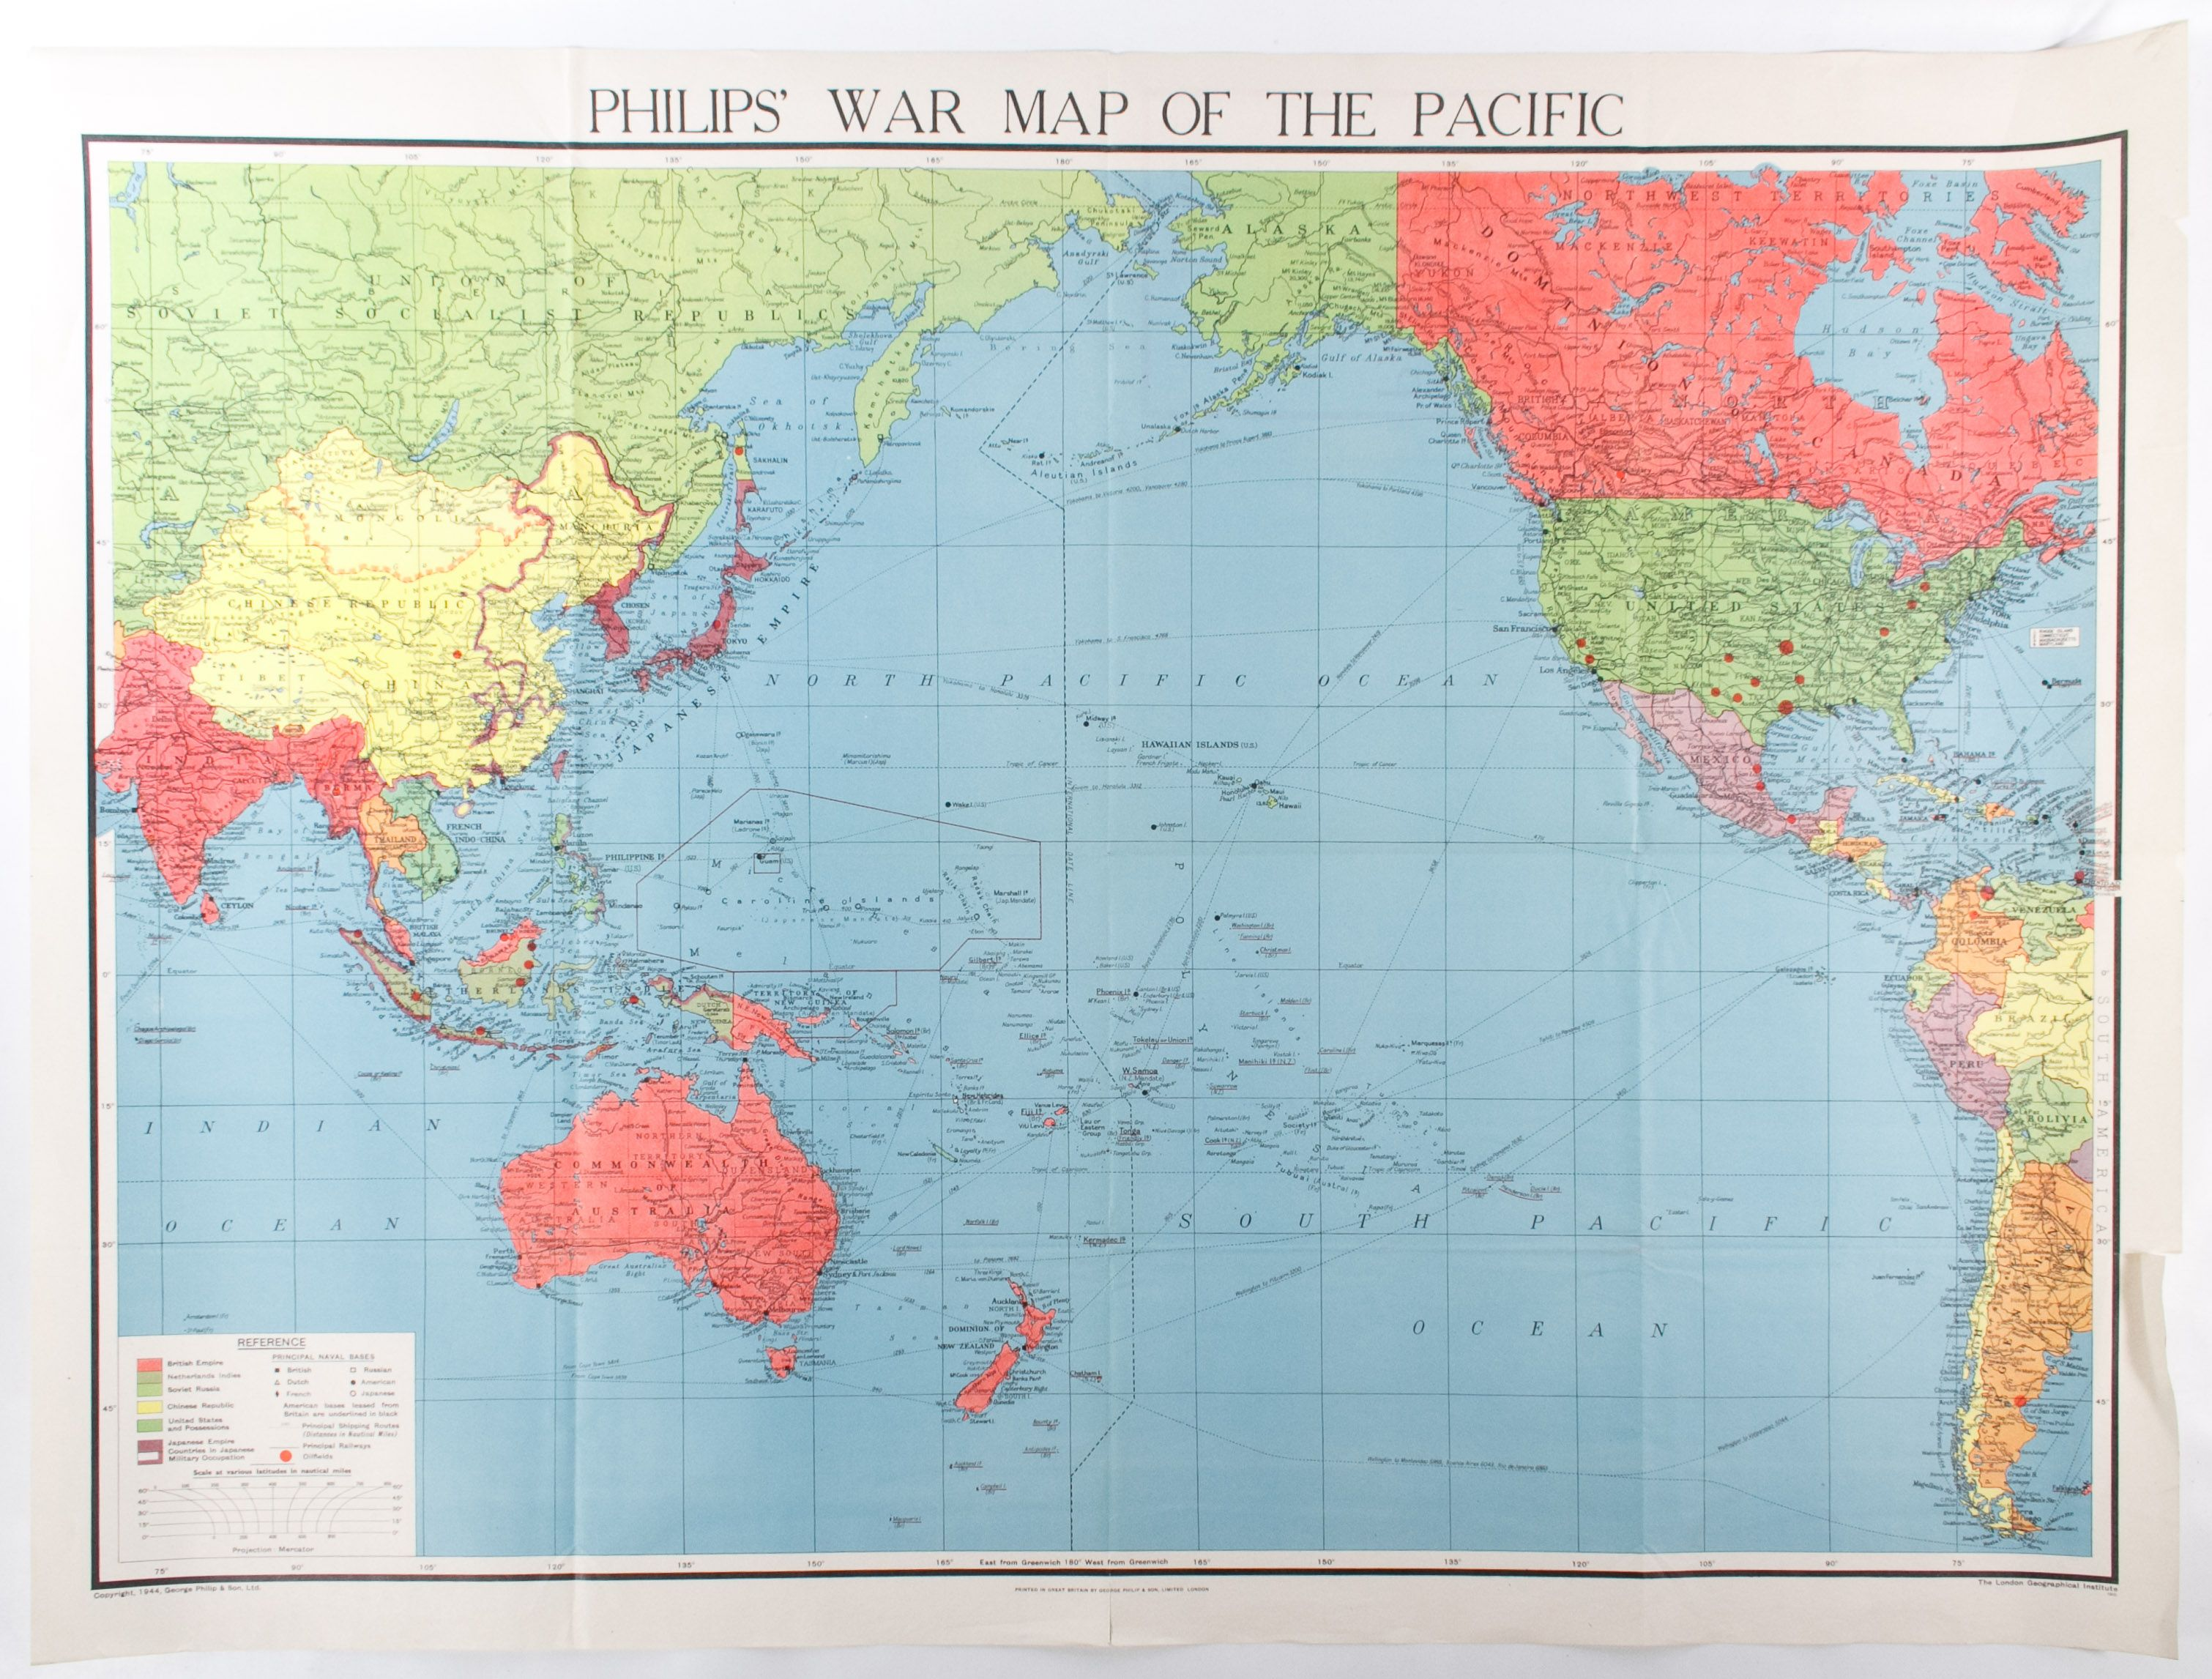 Lot 701 world war ii era american printed maps three maps lot world war ii era american printed maps three maps including a 1946 adsec in action mailer poster with the soldiers notes en verso a 1939 japanese gumiabroncs